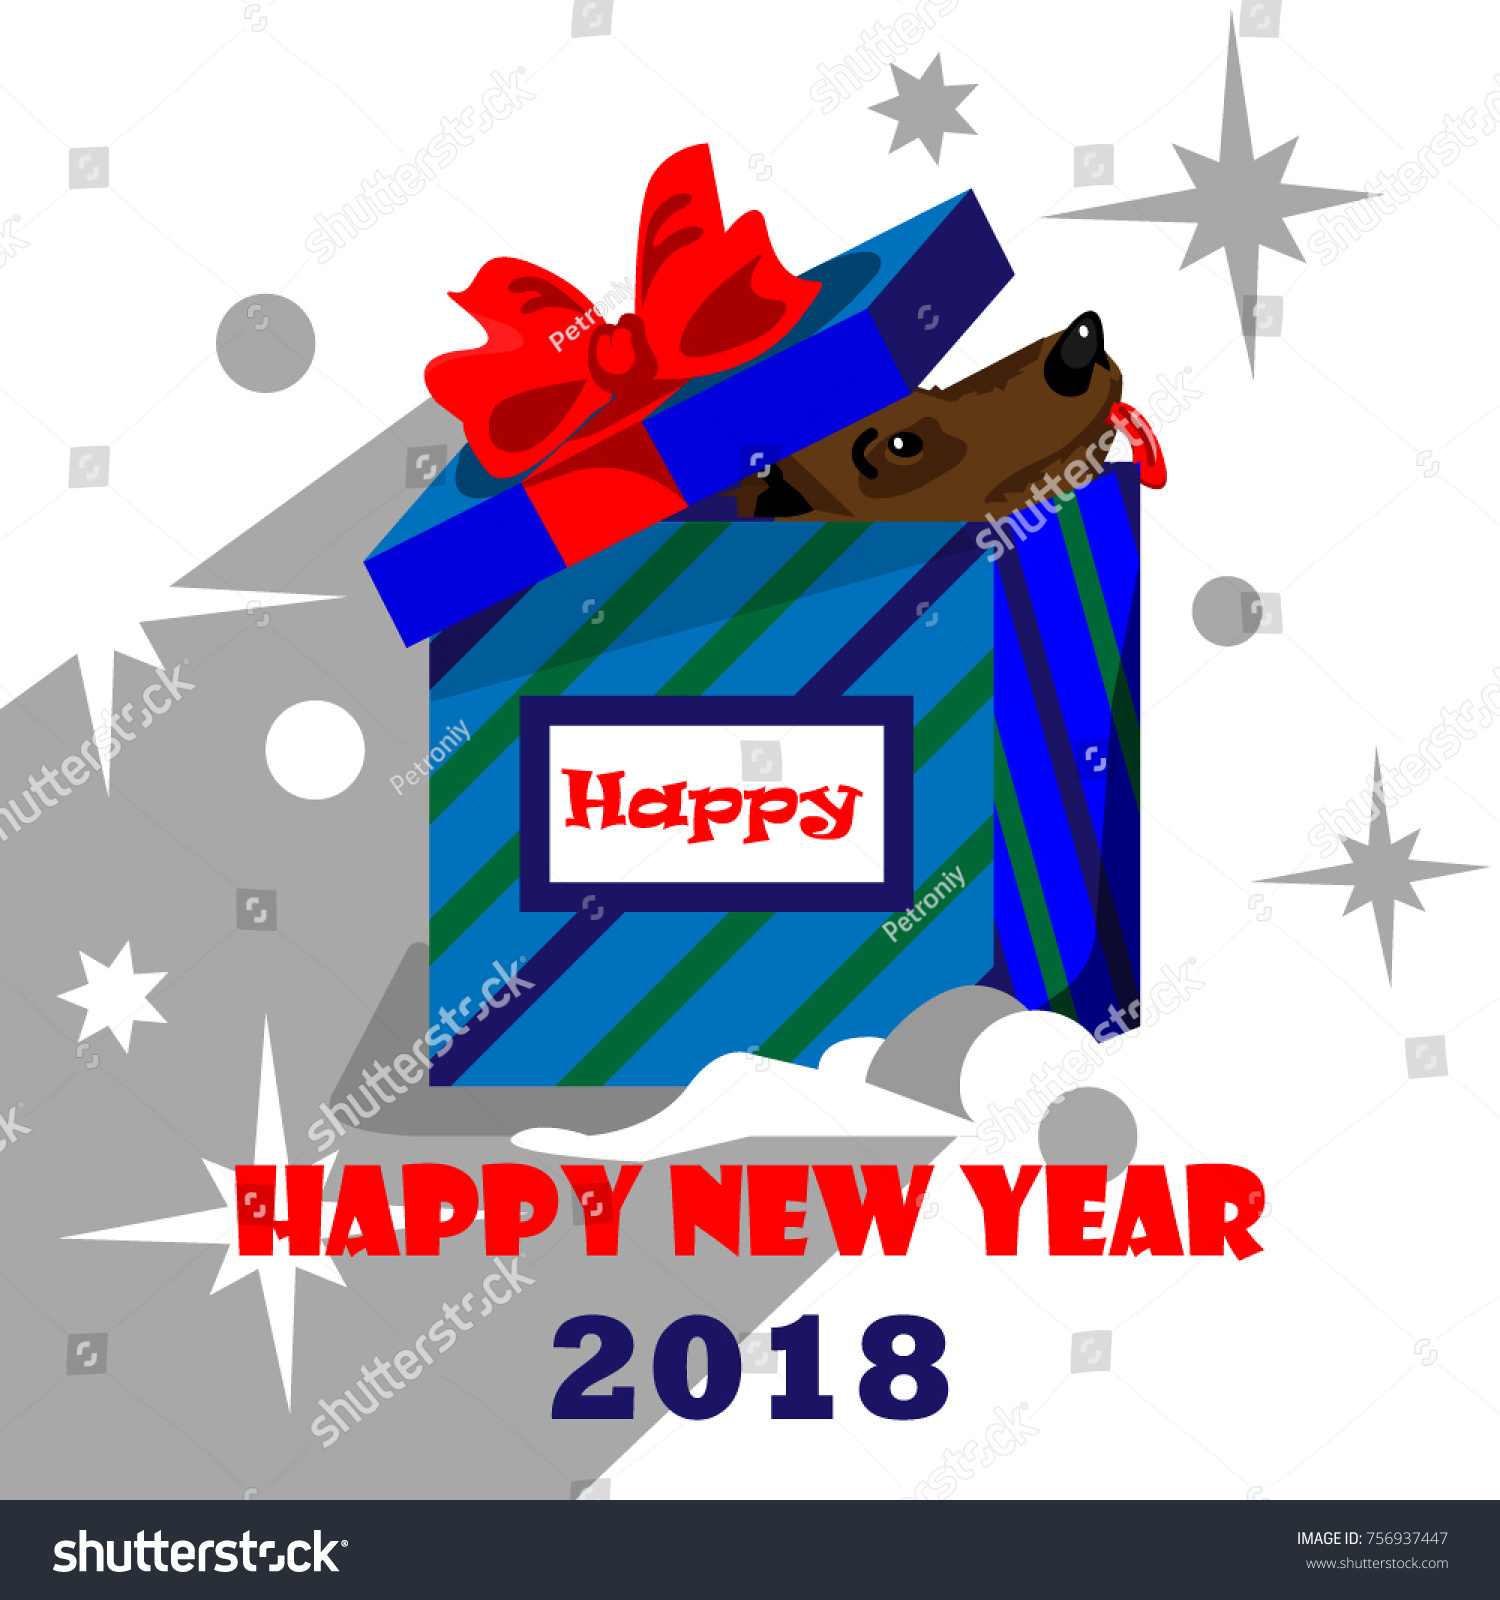 happy new year 2018 a dog in a gift box greeting card or